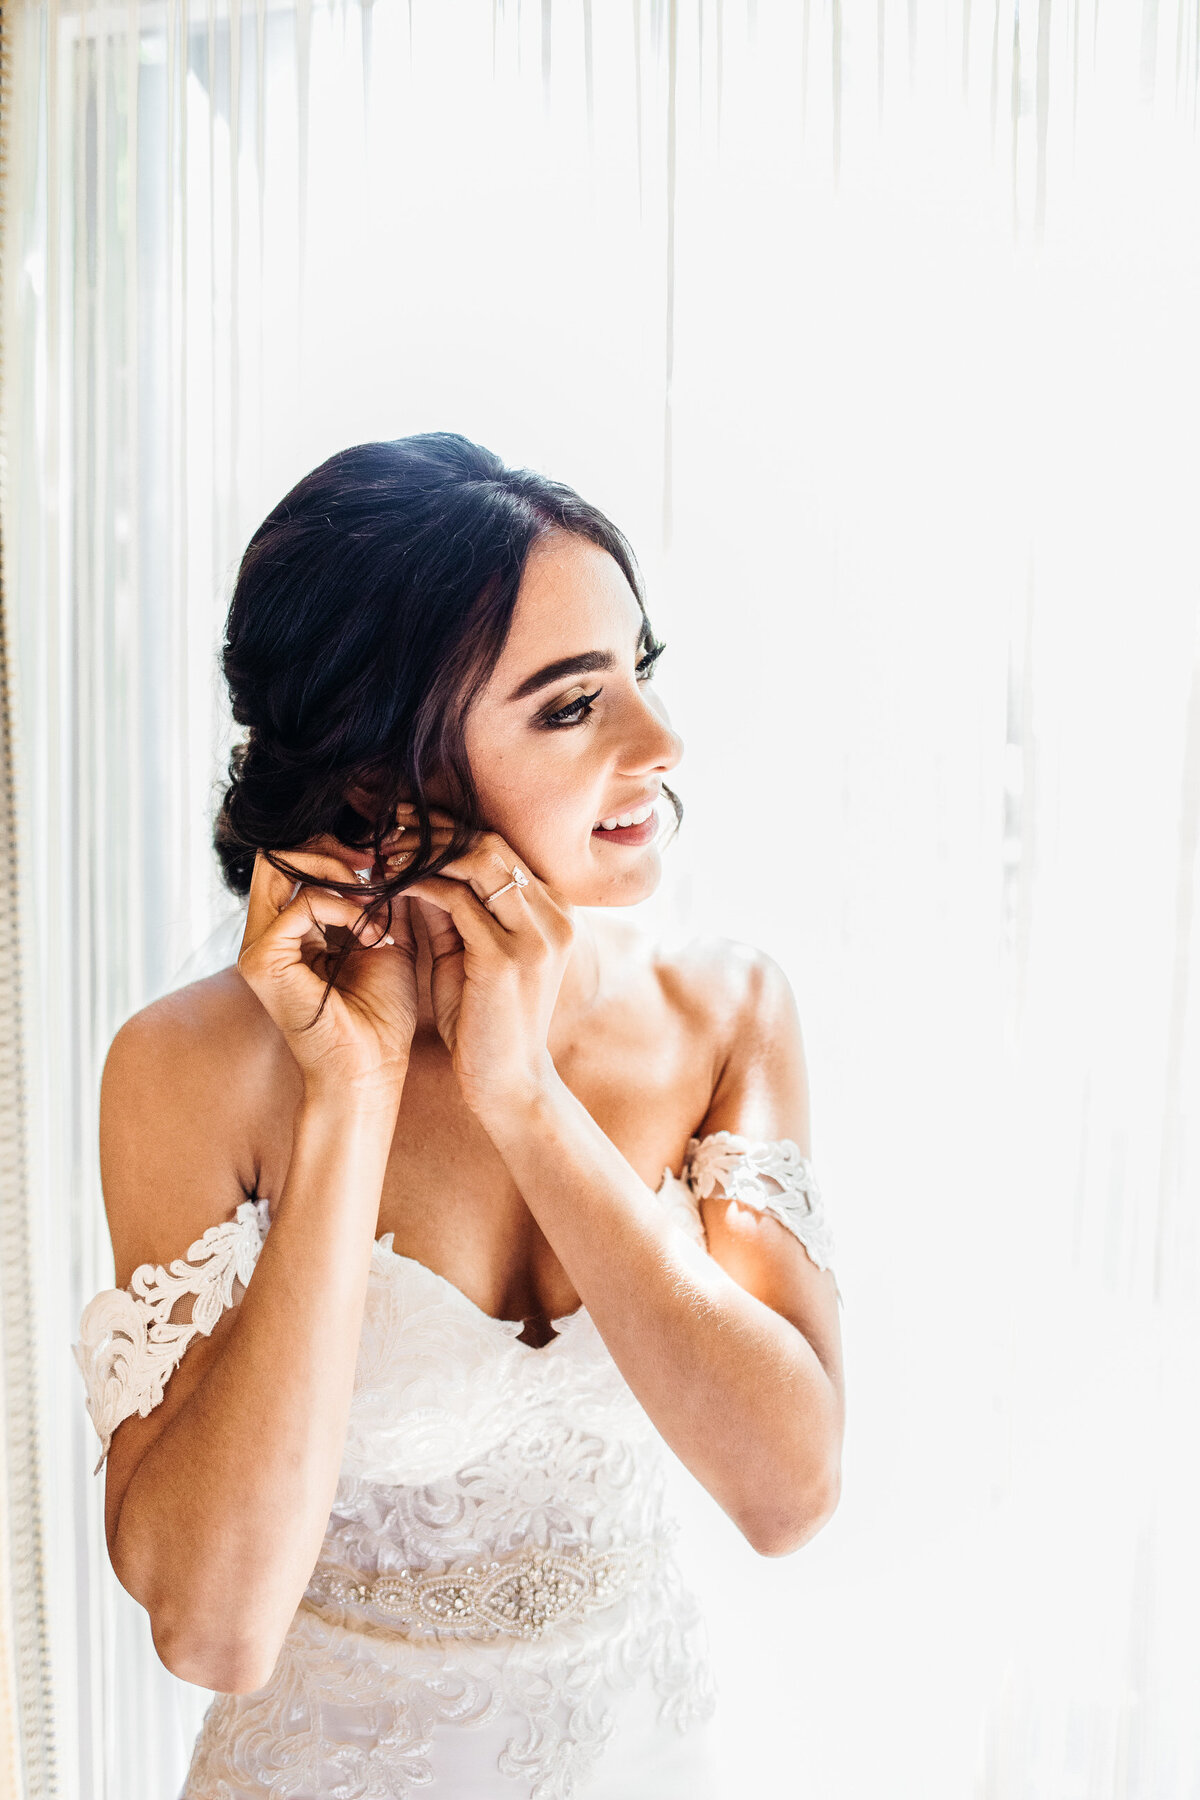 los-angeles-wedding-photographer-erin-marton-photography-7